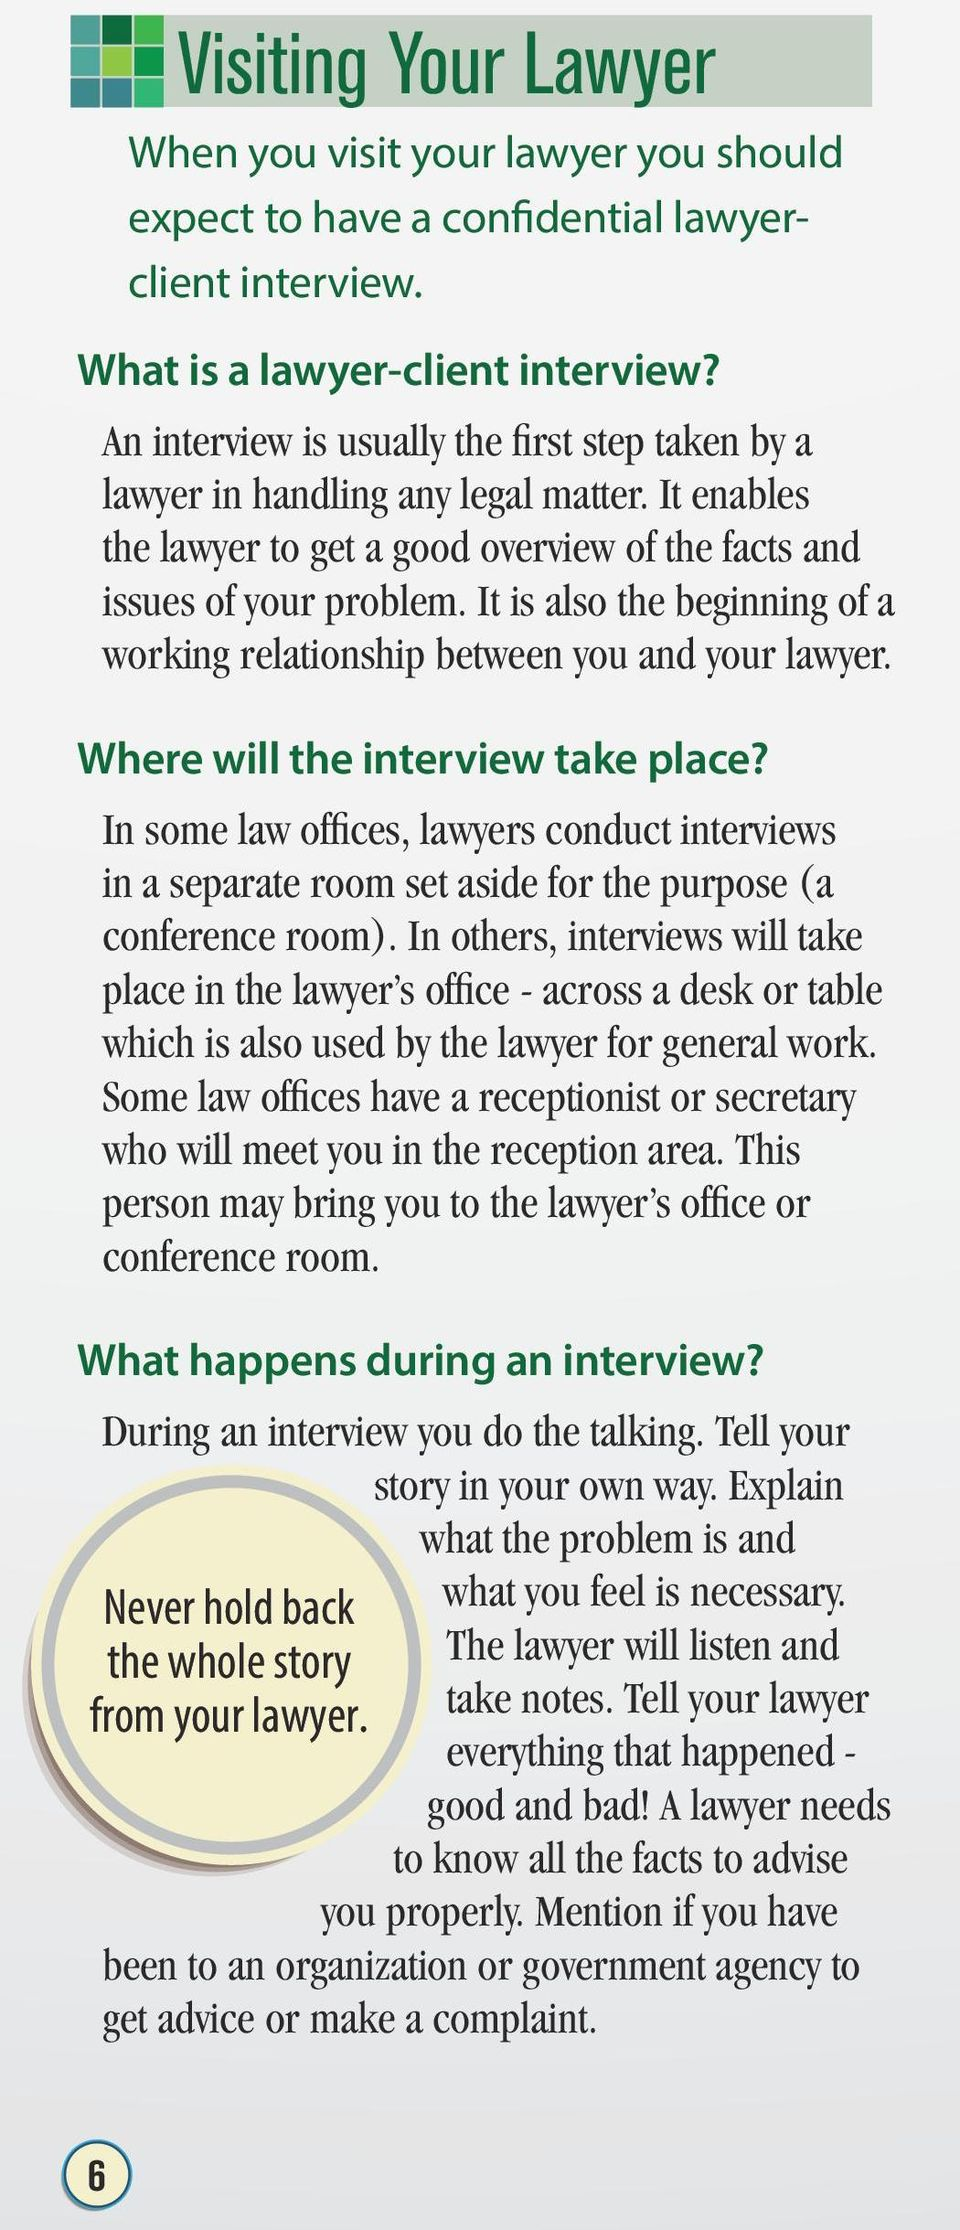 It is also the beginning of a working relationship between you and your lawyer. Where will the interview take place?